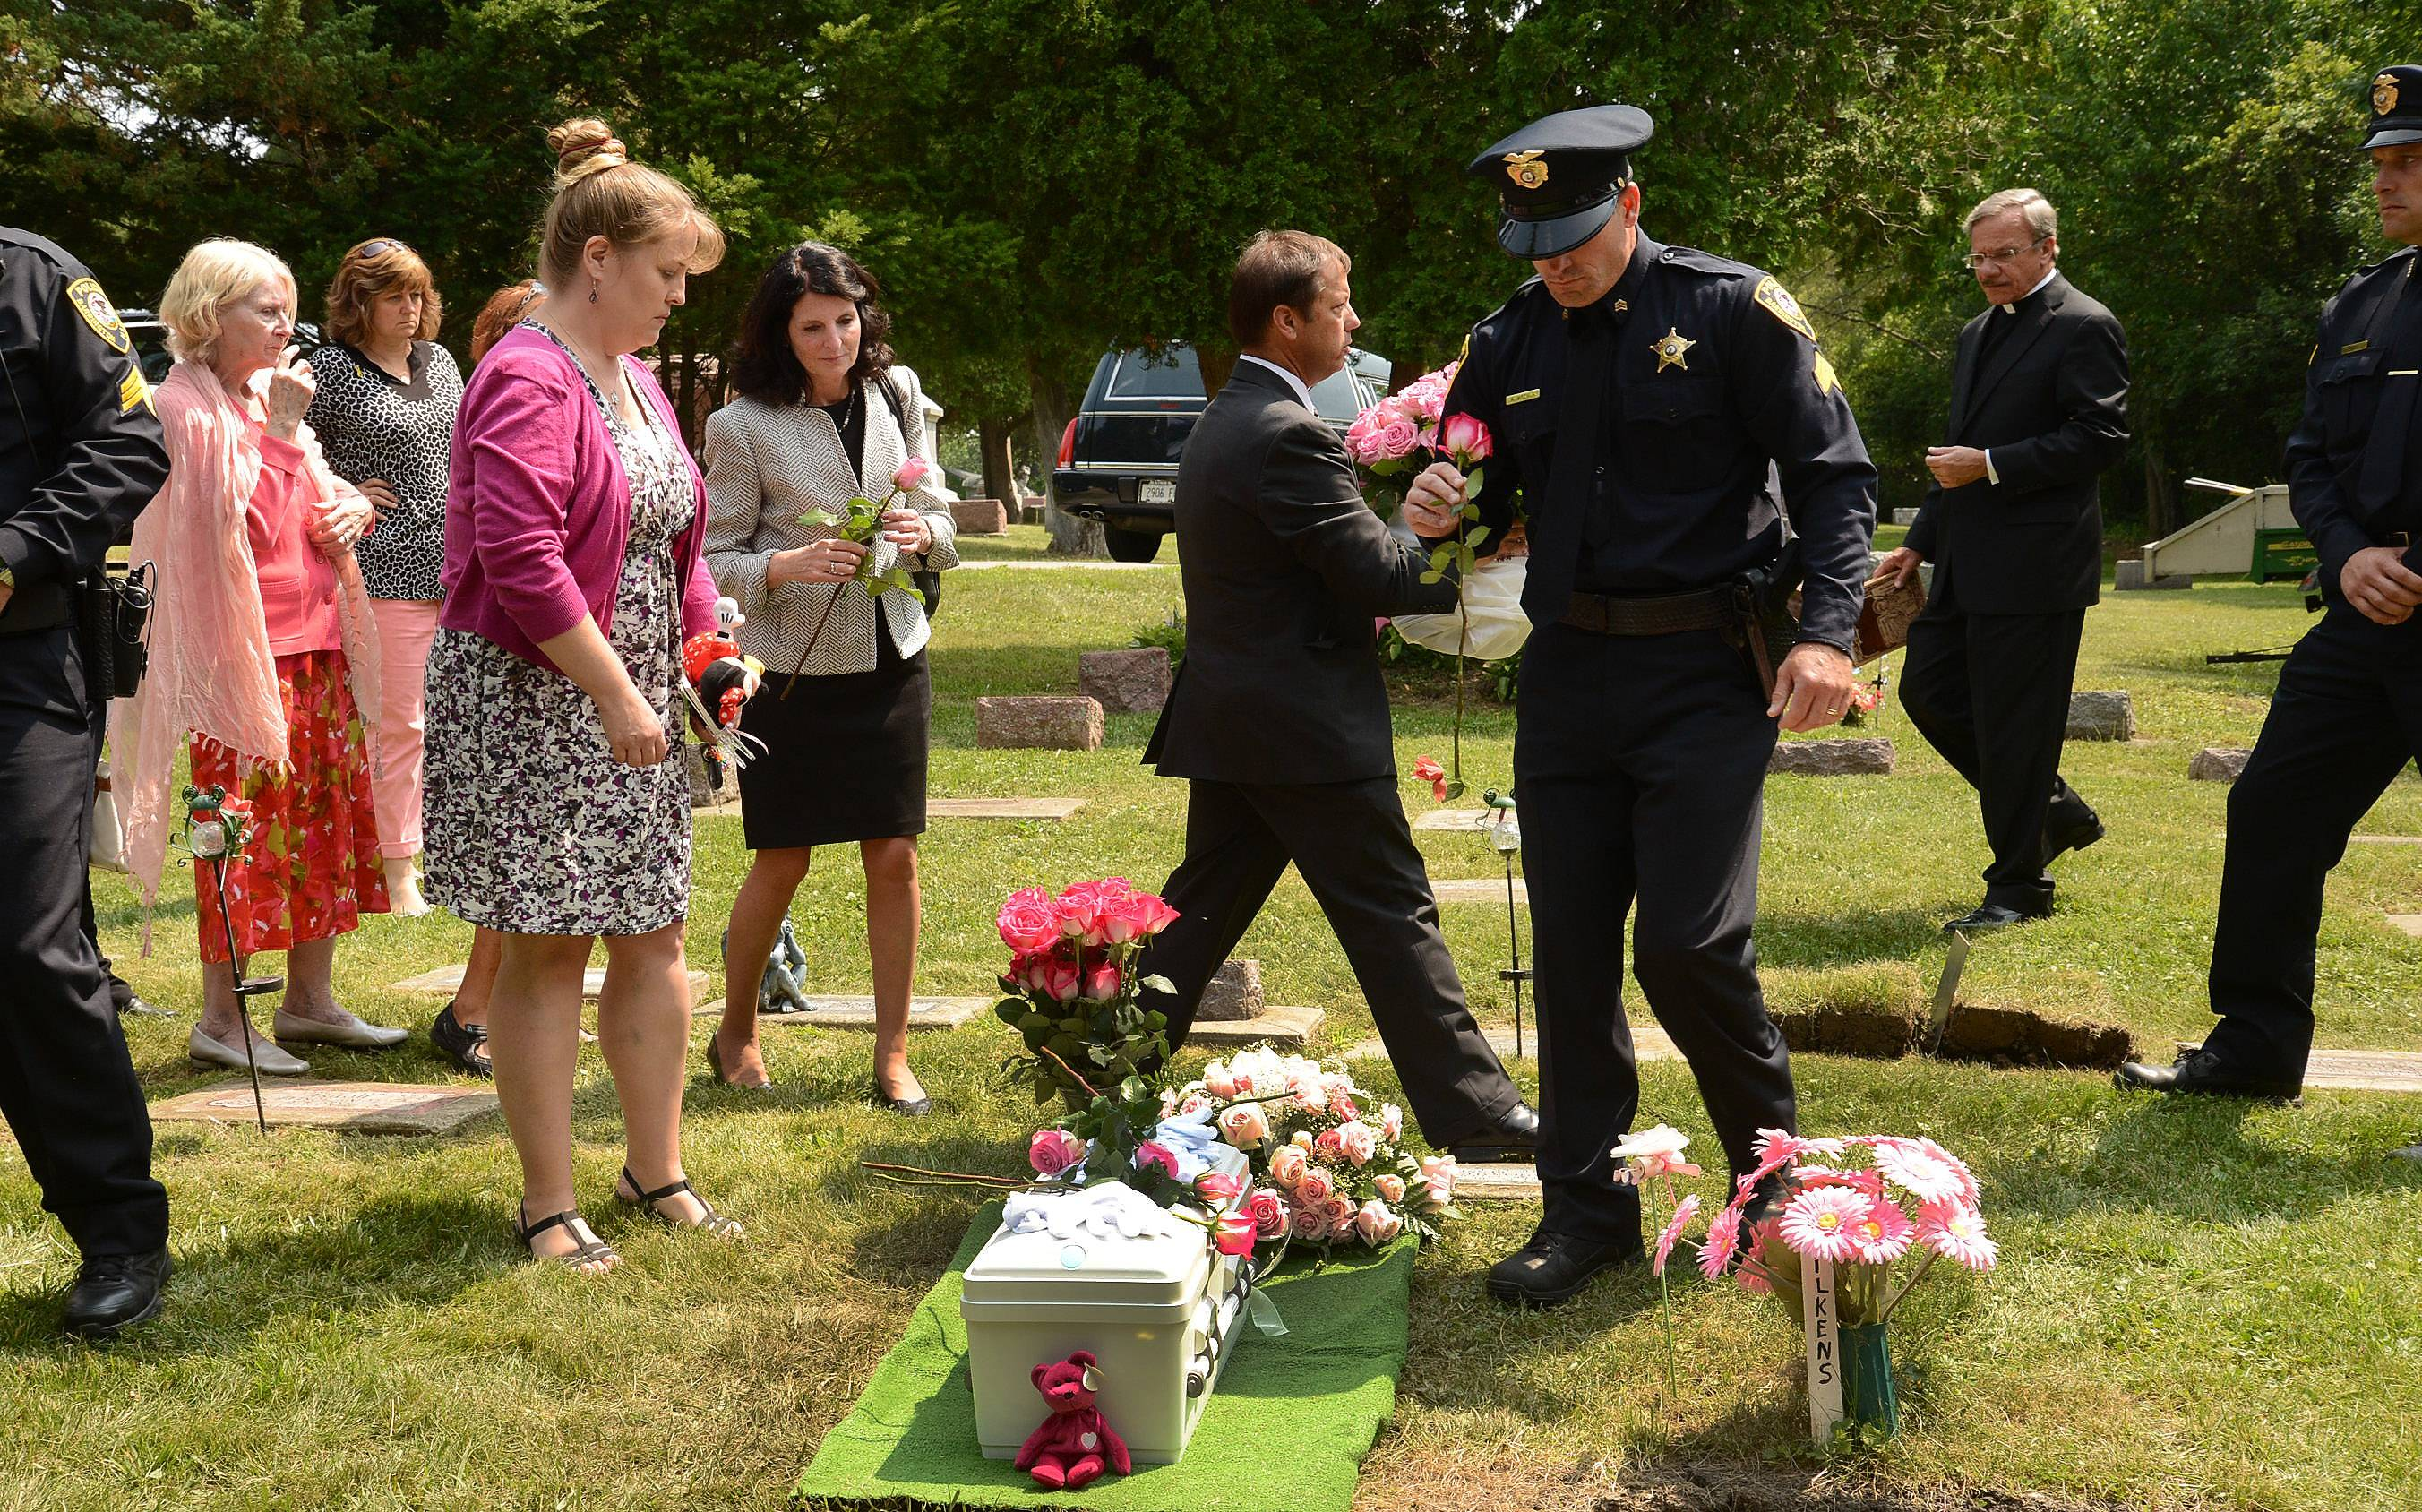 Mya Edwards, a 7-month-old girl who starved to death in January, is laid to rest Thursday during a ceremony in Barrington. The funeral was organized by a suburban nonprofit group and Barrington officials.